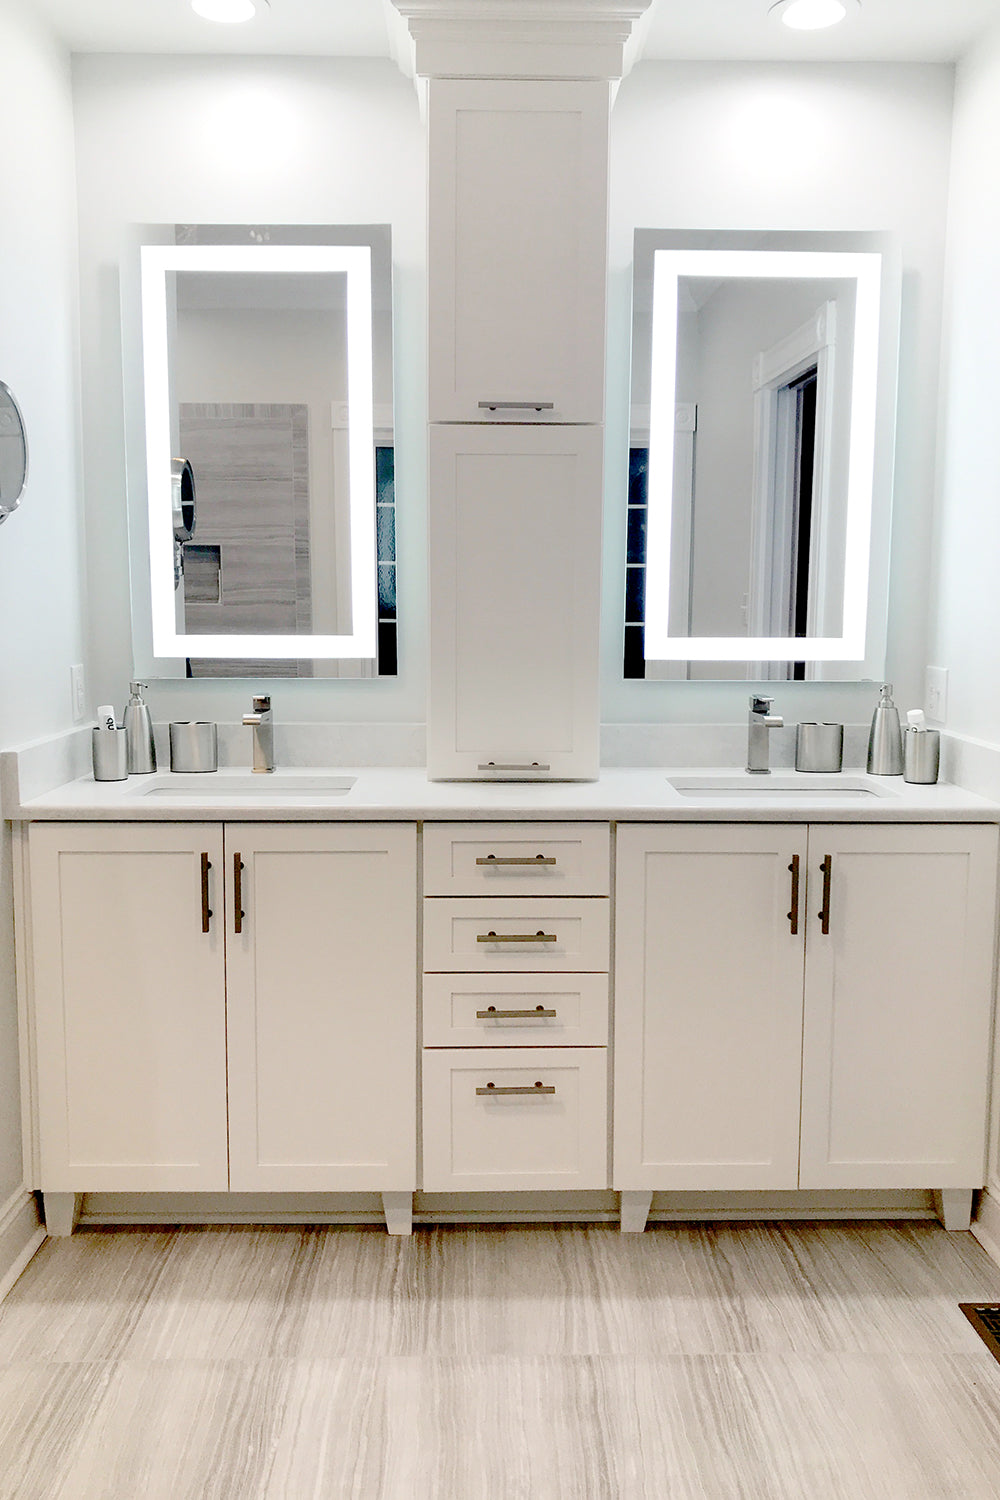 Front Lighted Led Bathroom Vanity Mirror 24 X 36 Rectangular Mirrors Marble